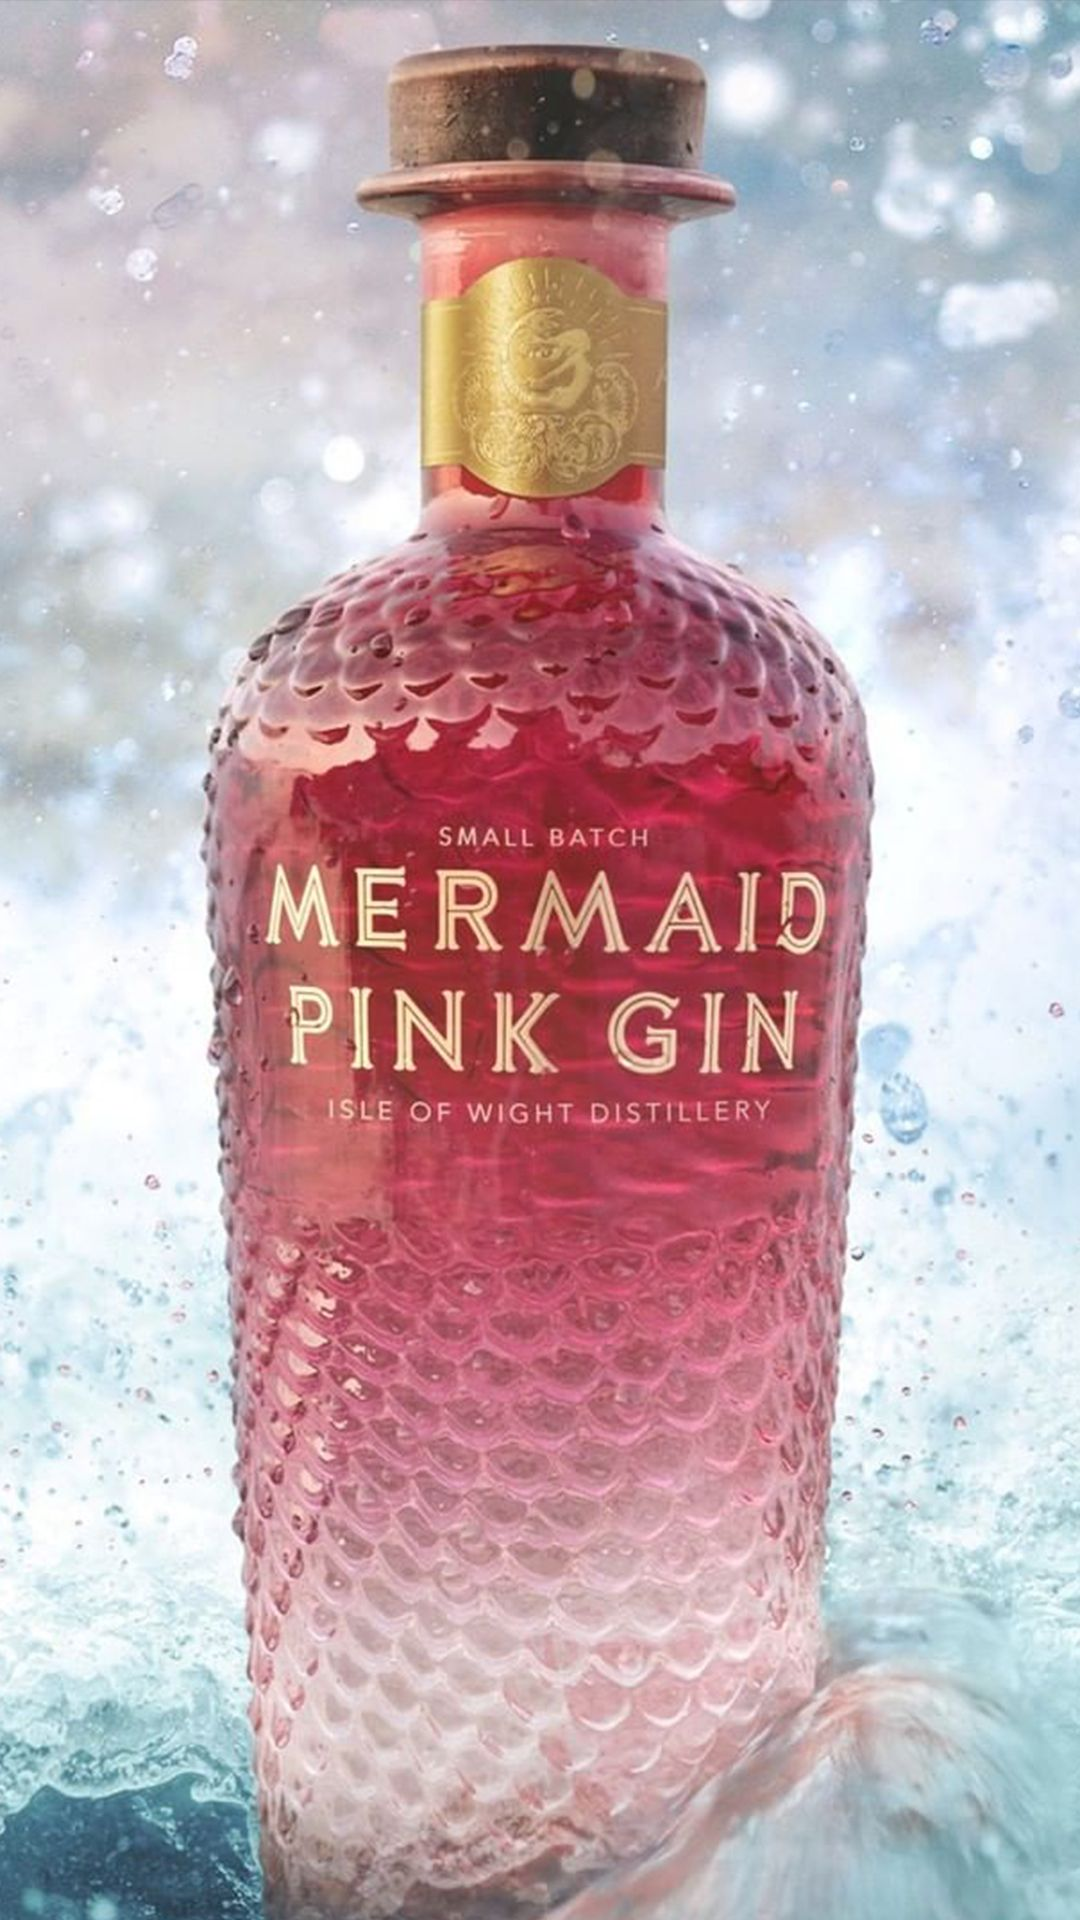 Mermaid Pink Gin Buy From The Whisky Exchange Pink Gin Flavoured Gin Gin Bottles